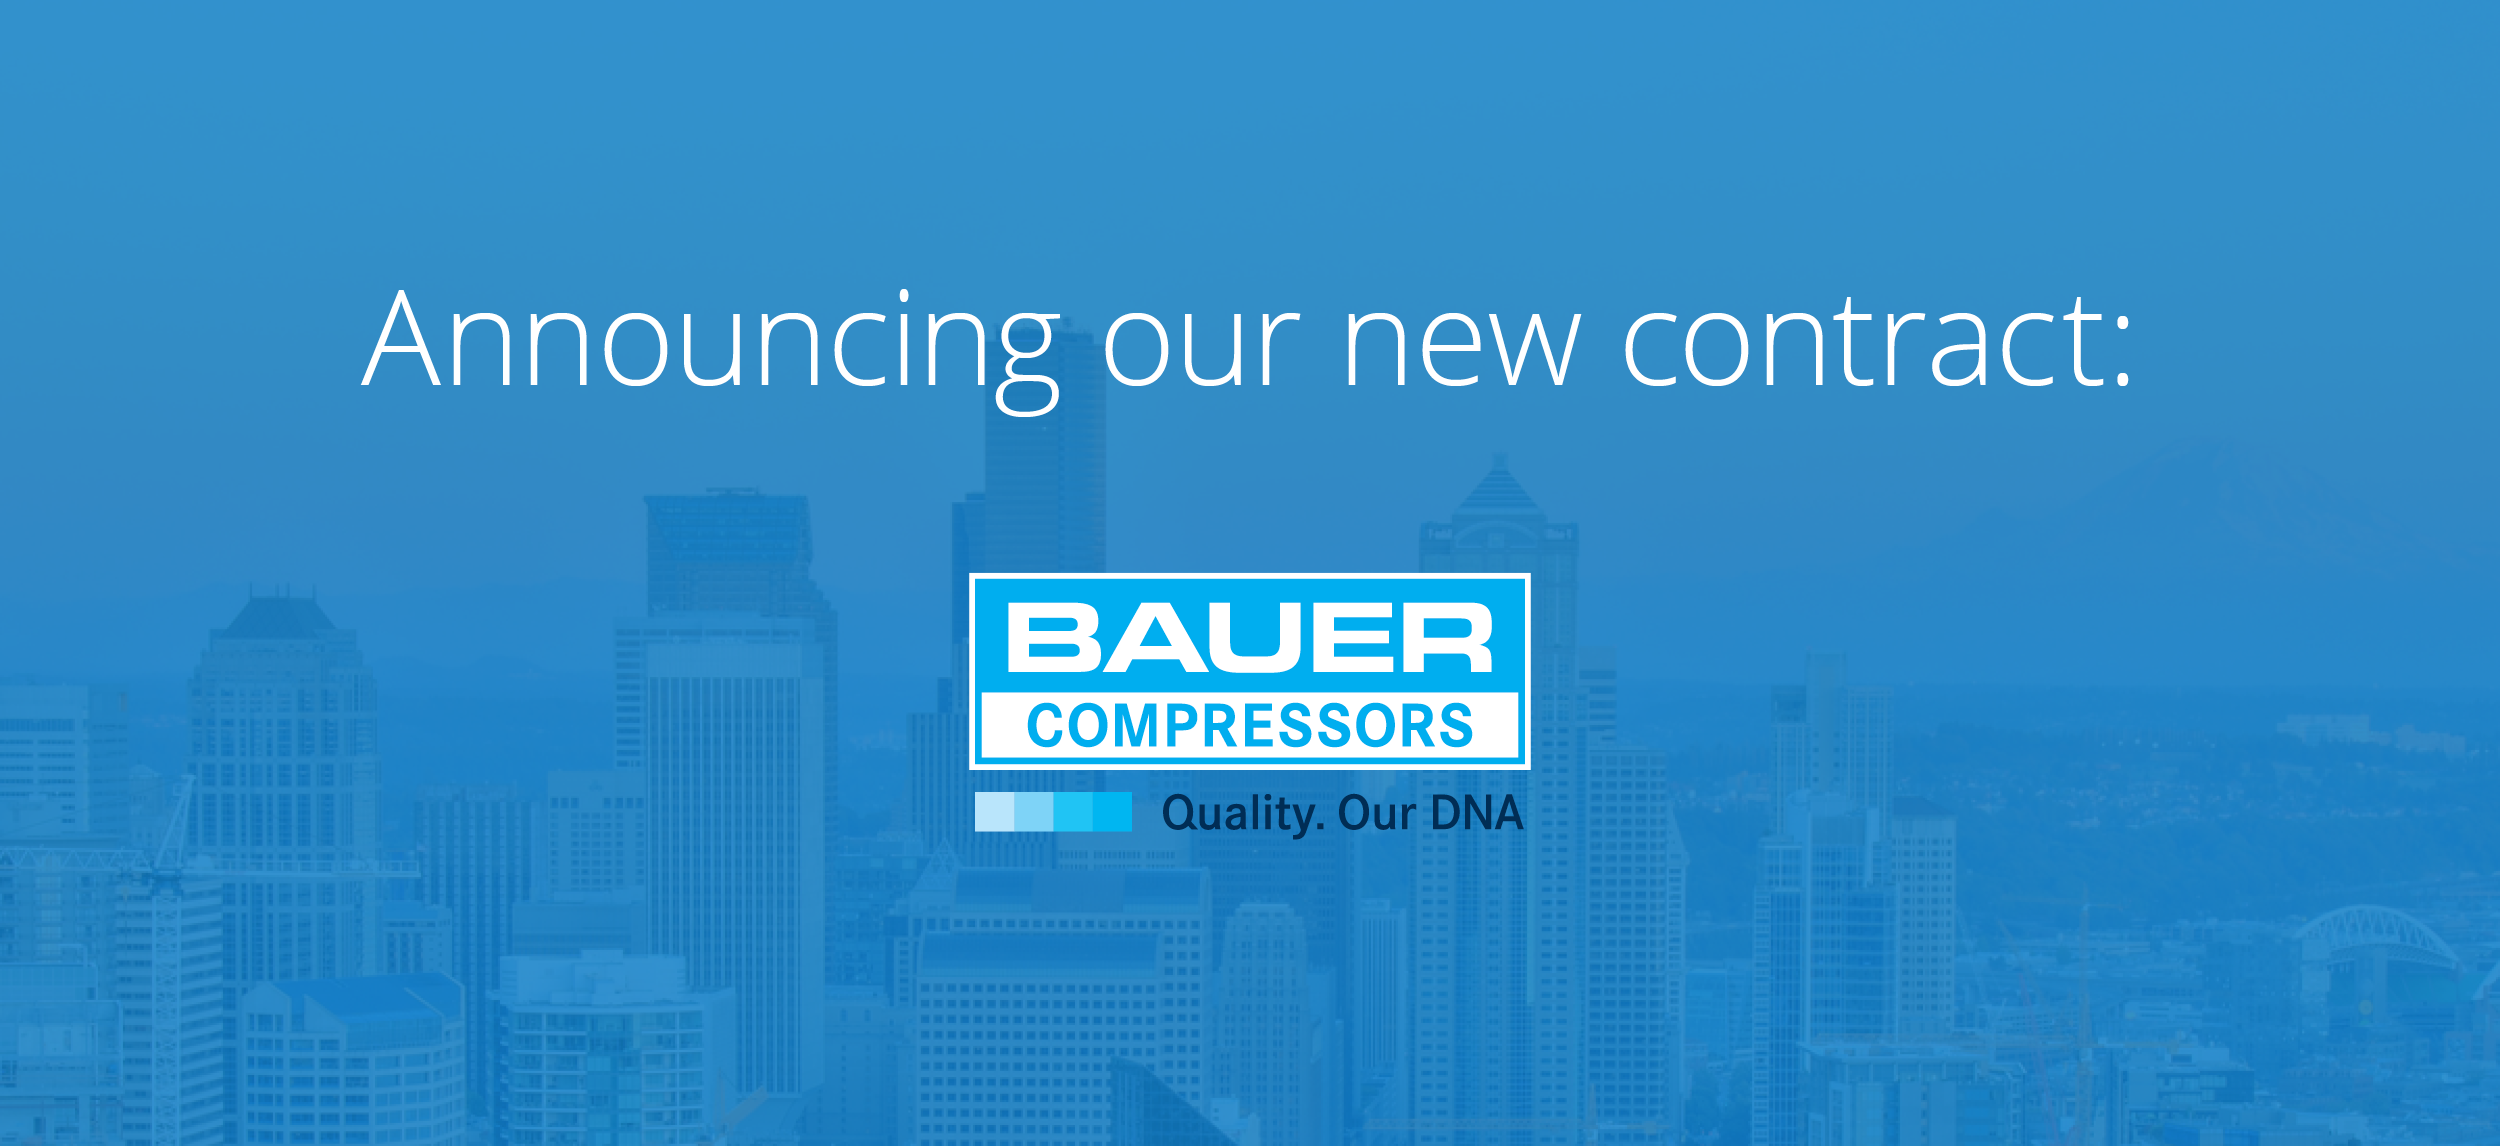 Announcing Bauer Compressors, Inc: Our Newest Contract